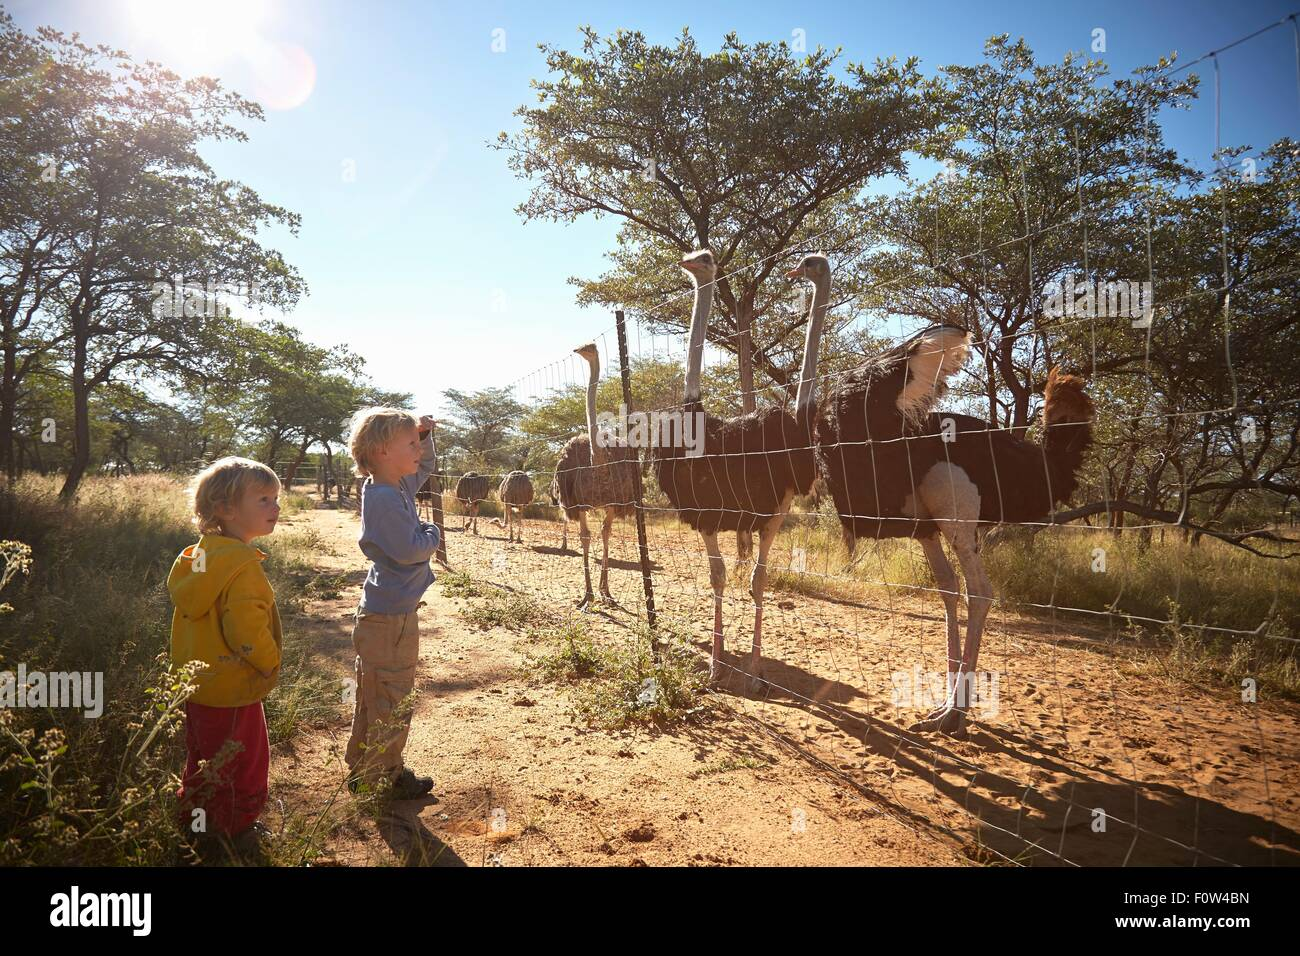 Boys looking at herd of ostriches, Harnas Wildlife Foundation, Namibia Stock Photo